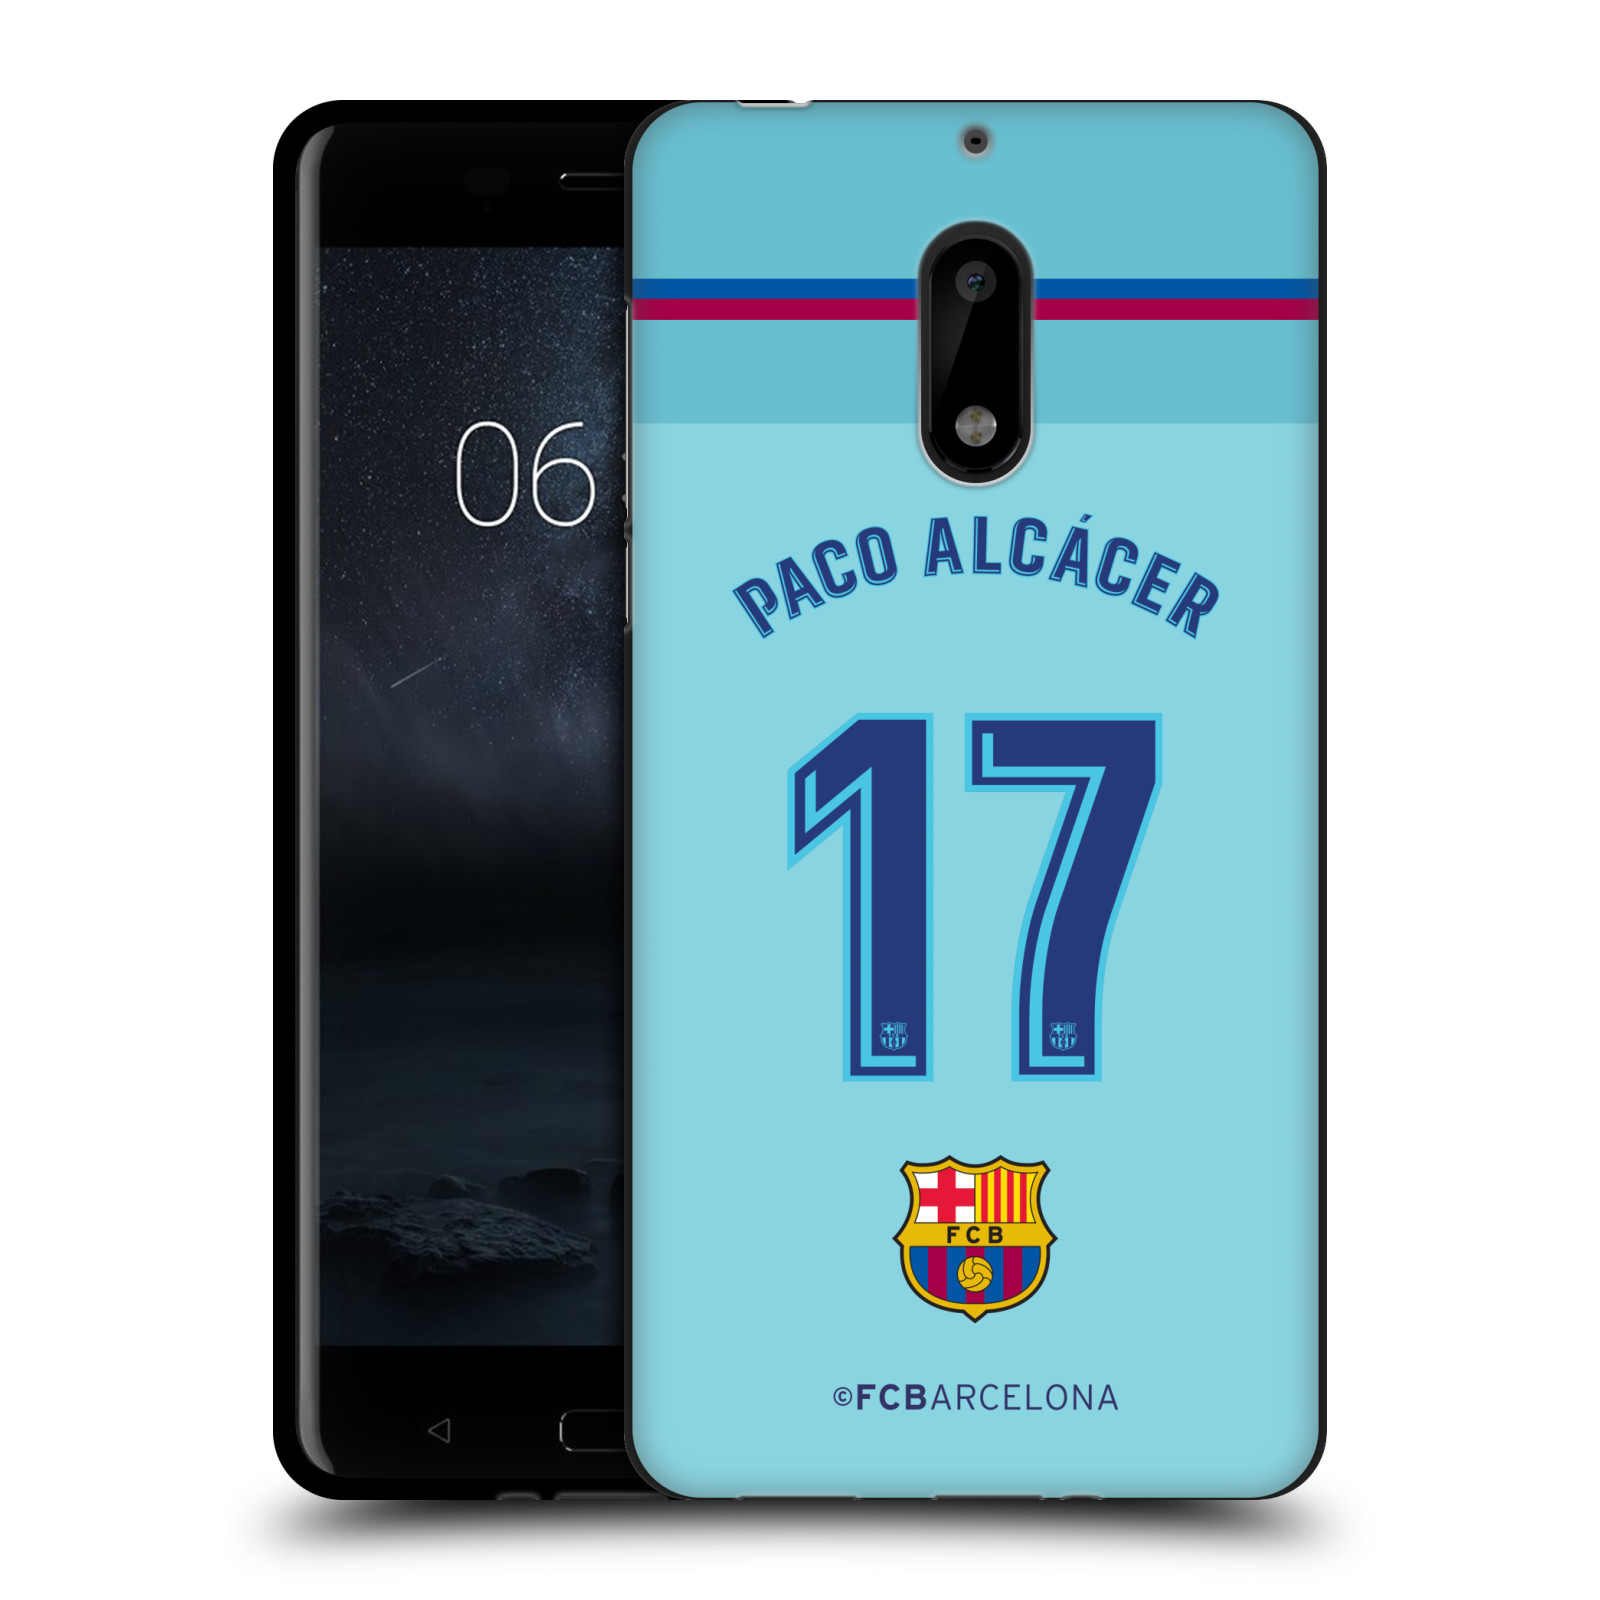 FC-BARCELONA-2017-18-AWAY-KIT-1-BLACK-SOFT-GEL-CASE-FOR-MICROSOFT-NOKIA-PHONES